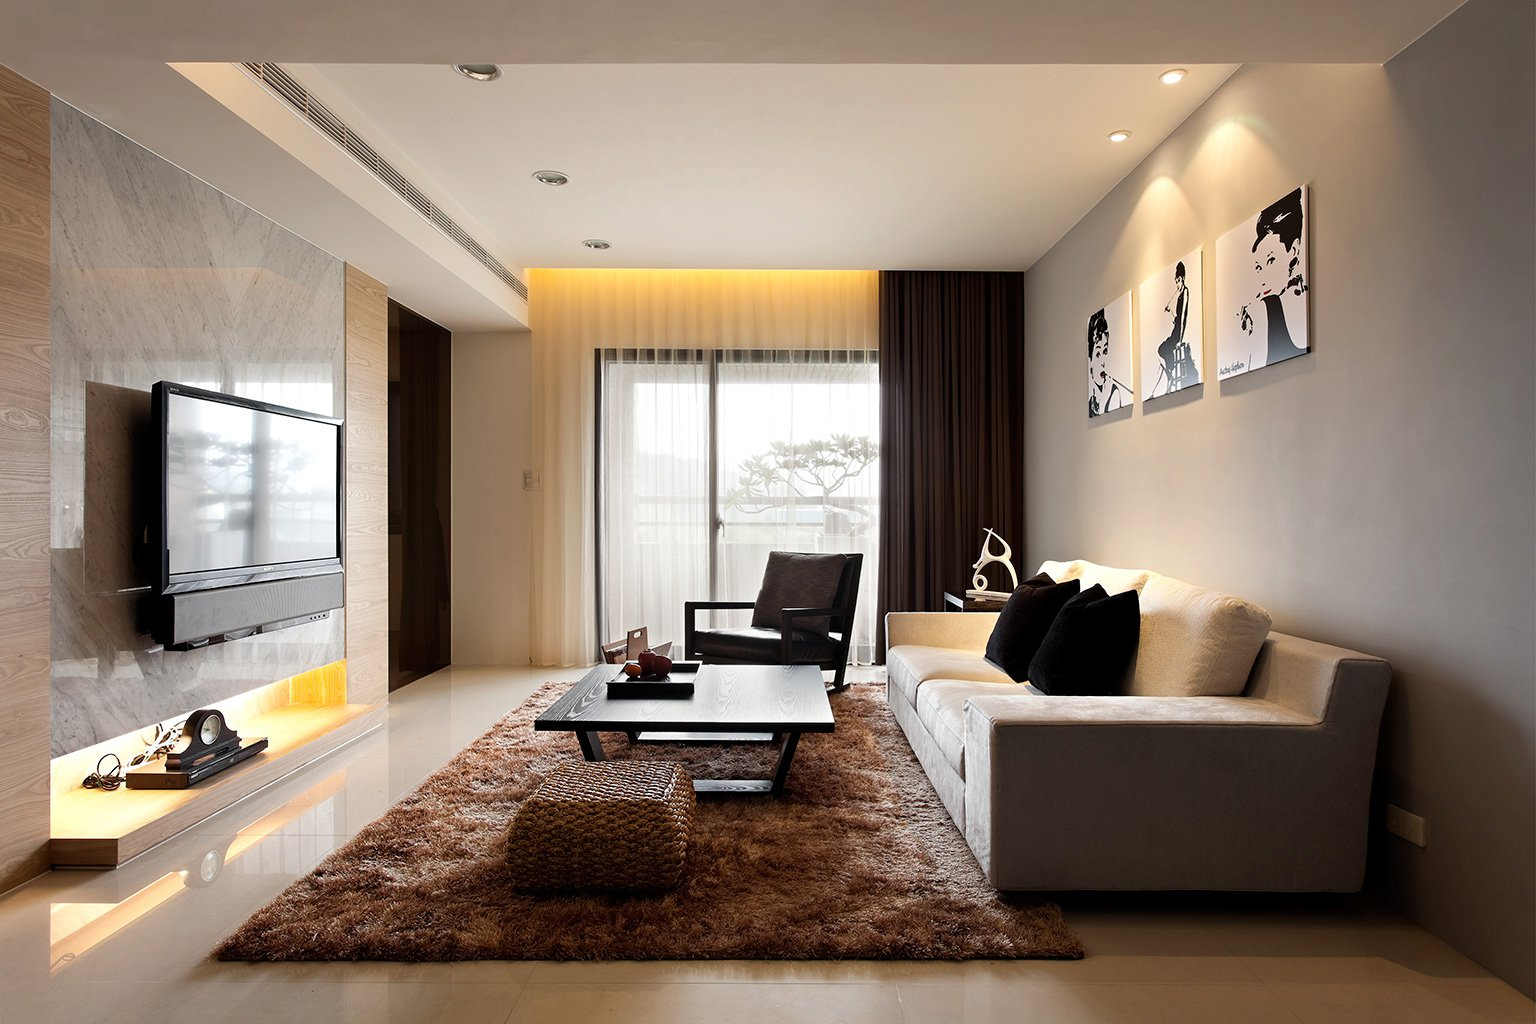 Great 25 Best Modern Living Room Designs. Jul 14, 2015. 22.5kshares